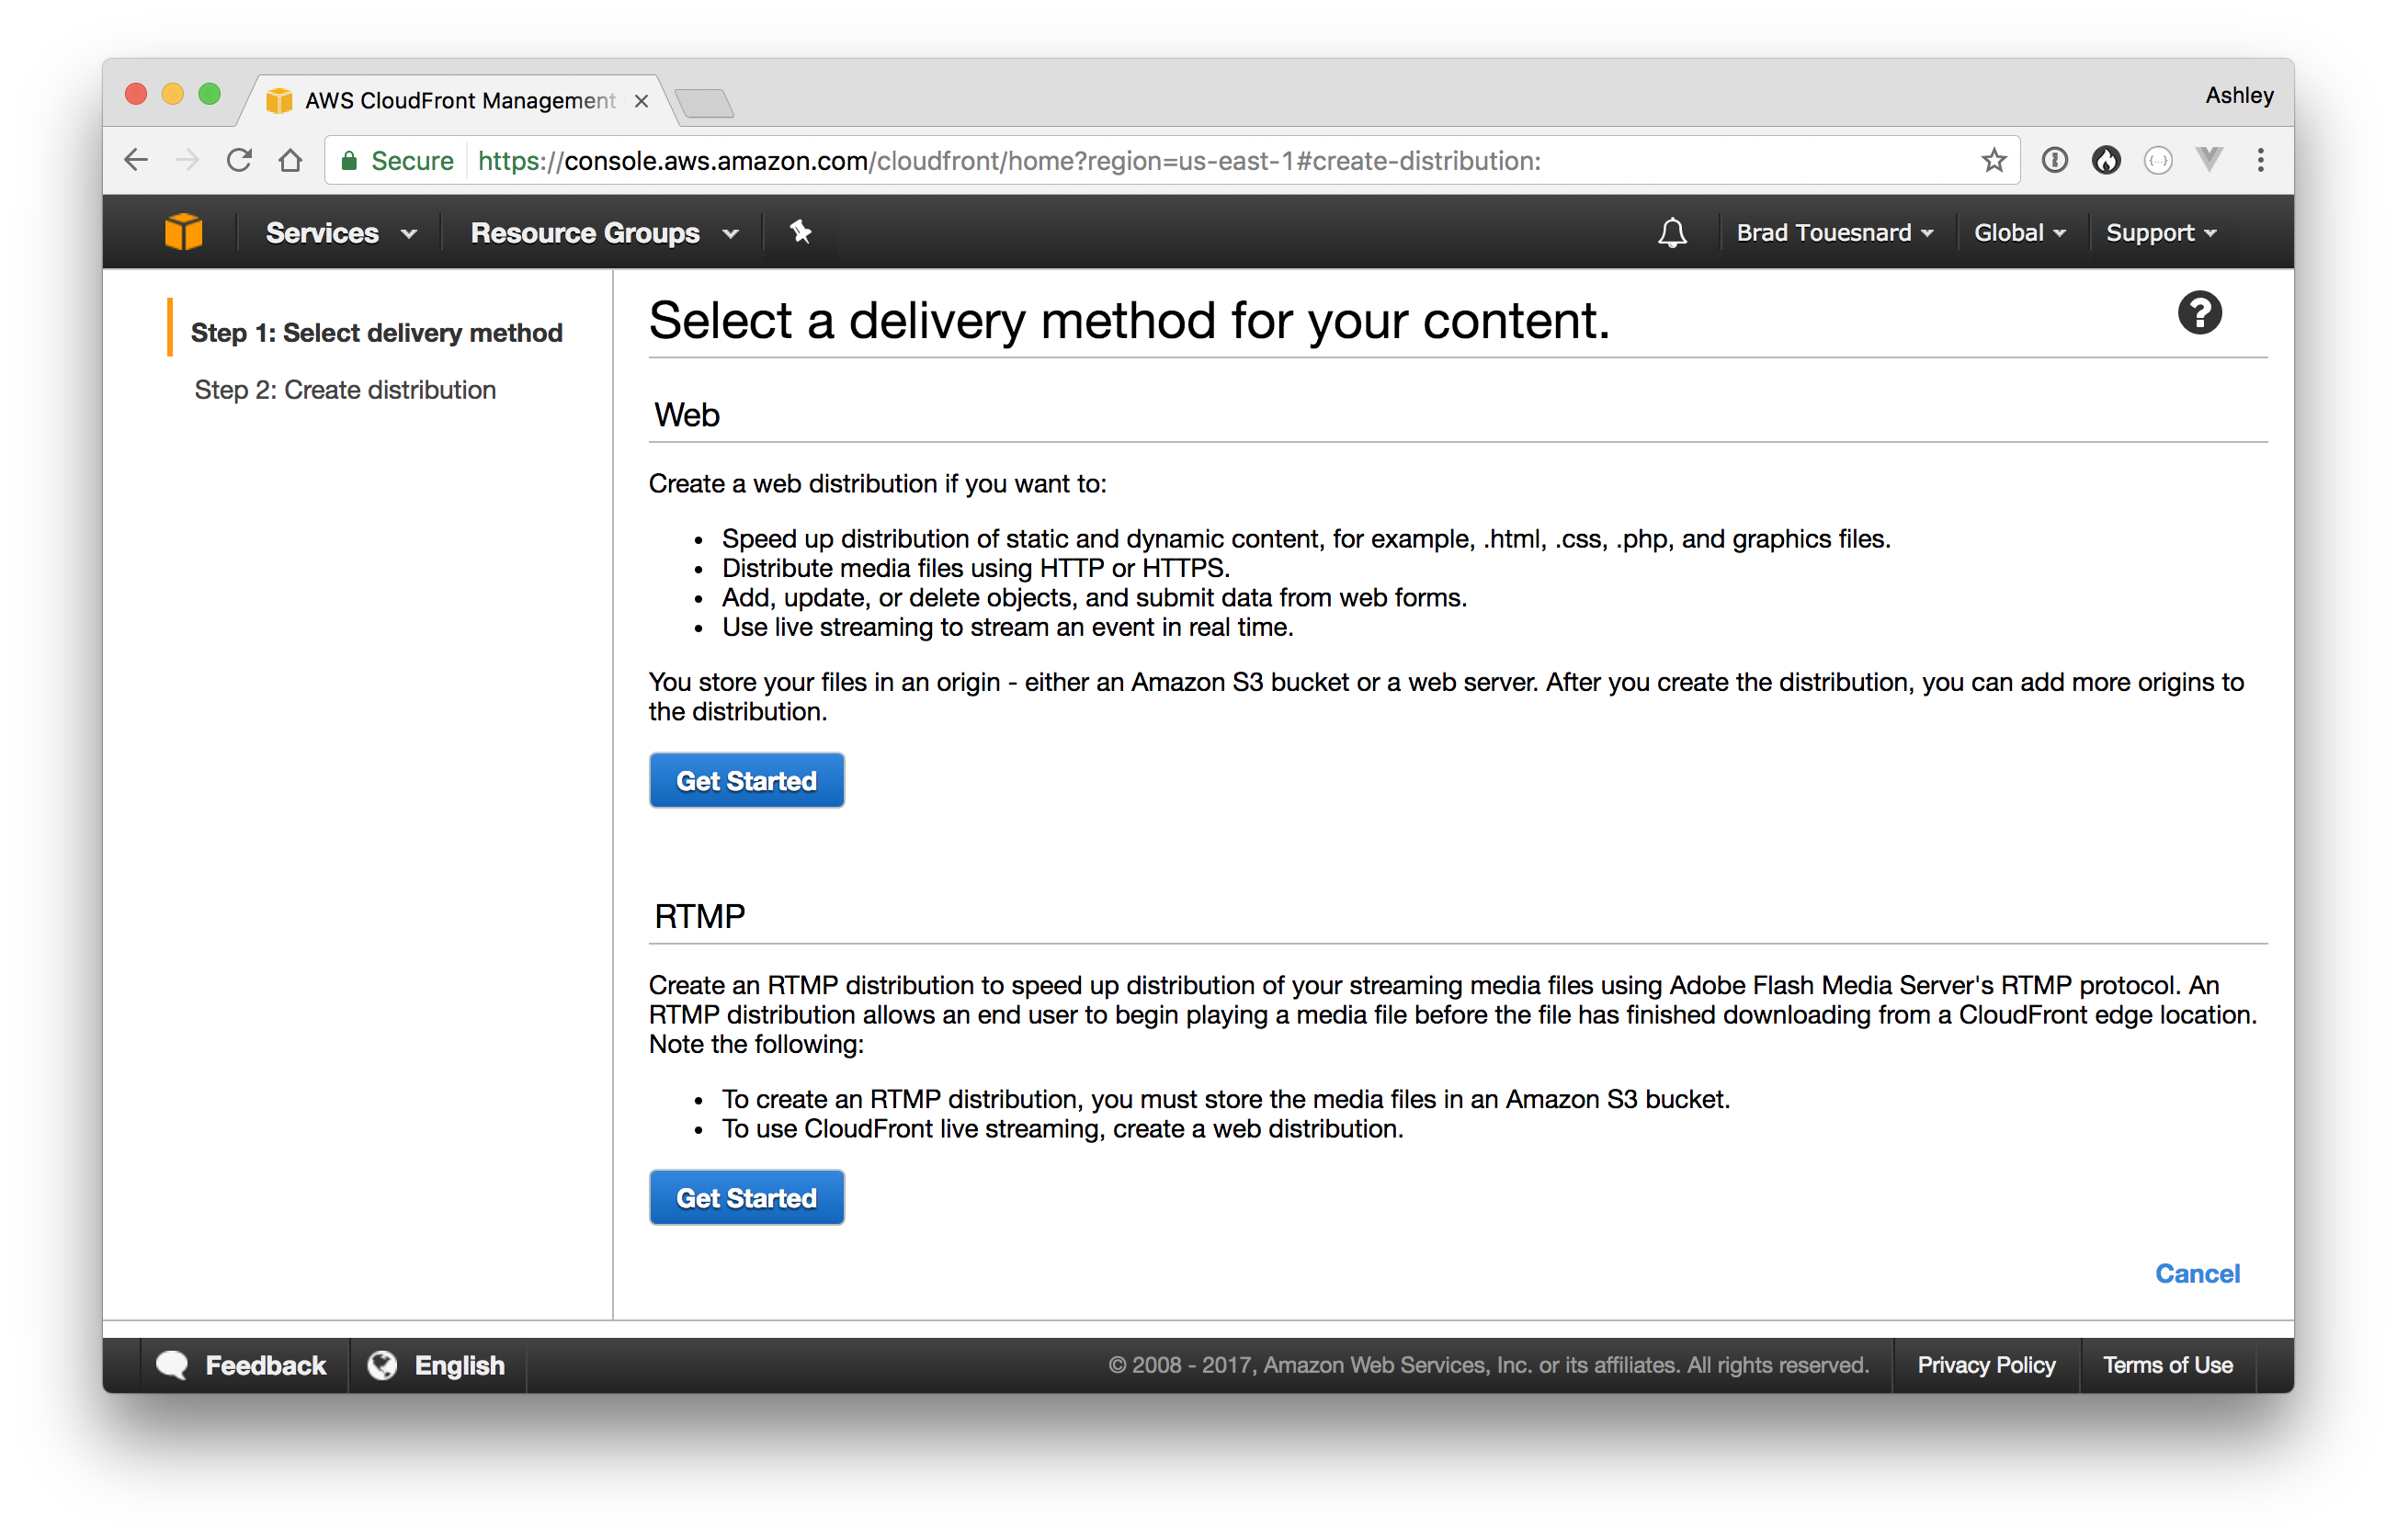 CloudFront Setup for Media Offloaded to Amazon S3